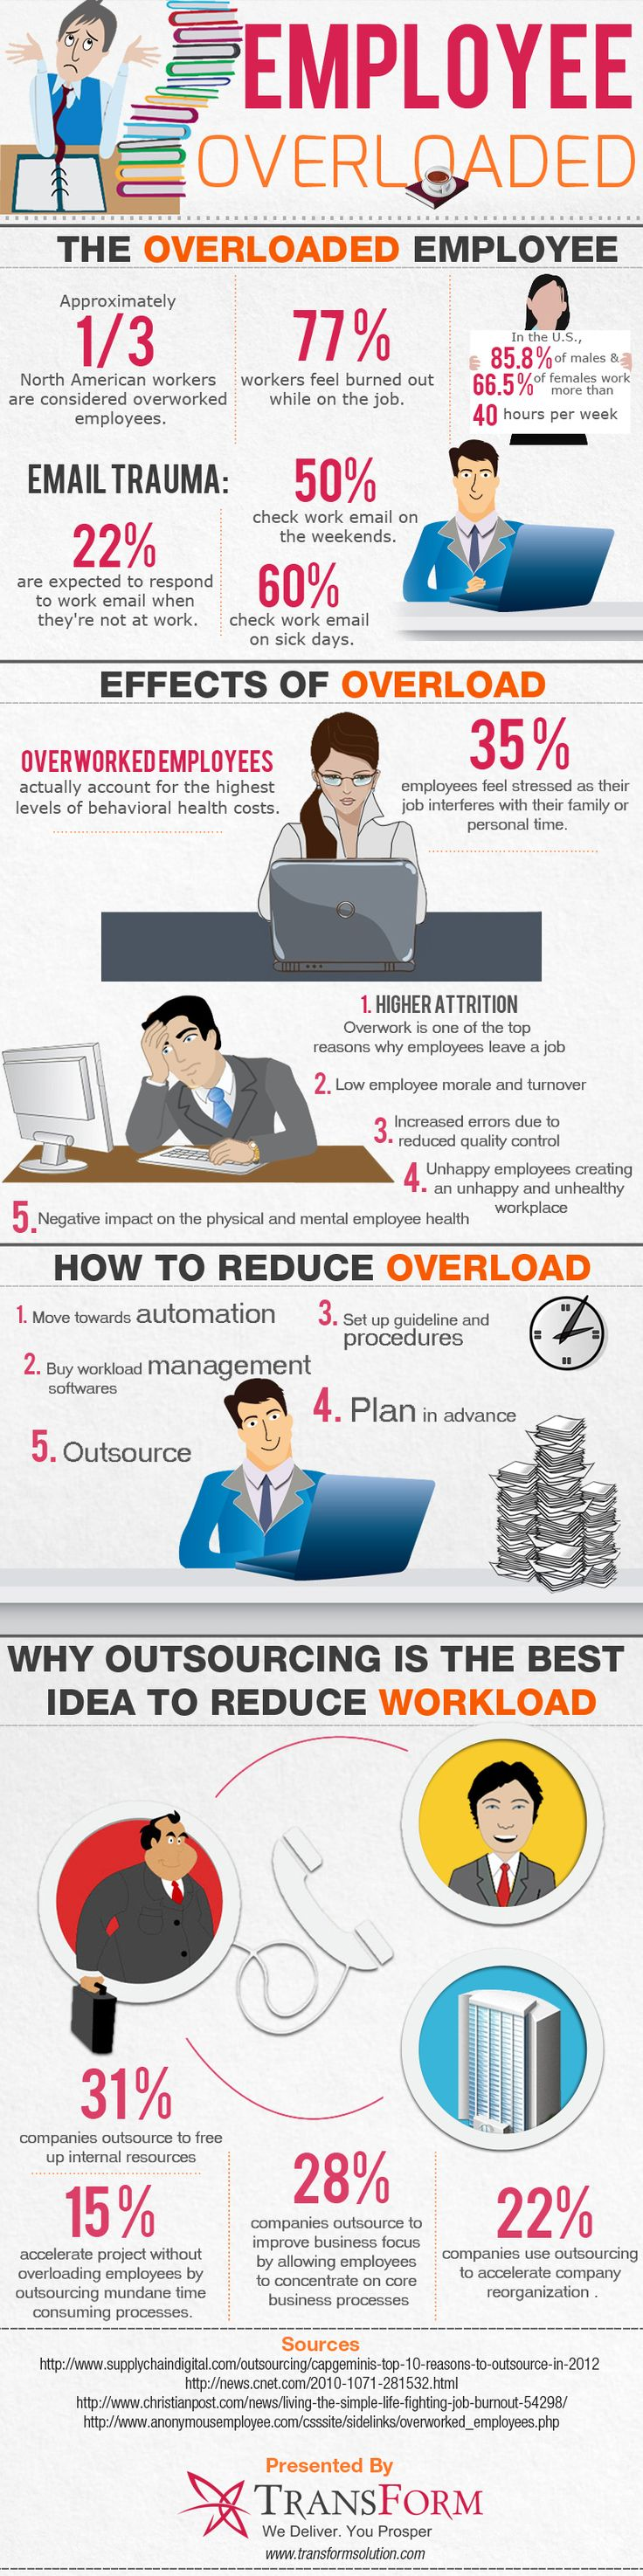 I chose this infographic because the layout and design catches your eye right away. It has balance of different colors and a balance of text and pictures. The topic is interesting because a lot of us suffer from employee overload, and we can relate.